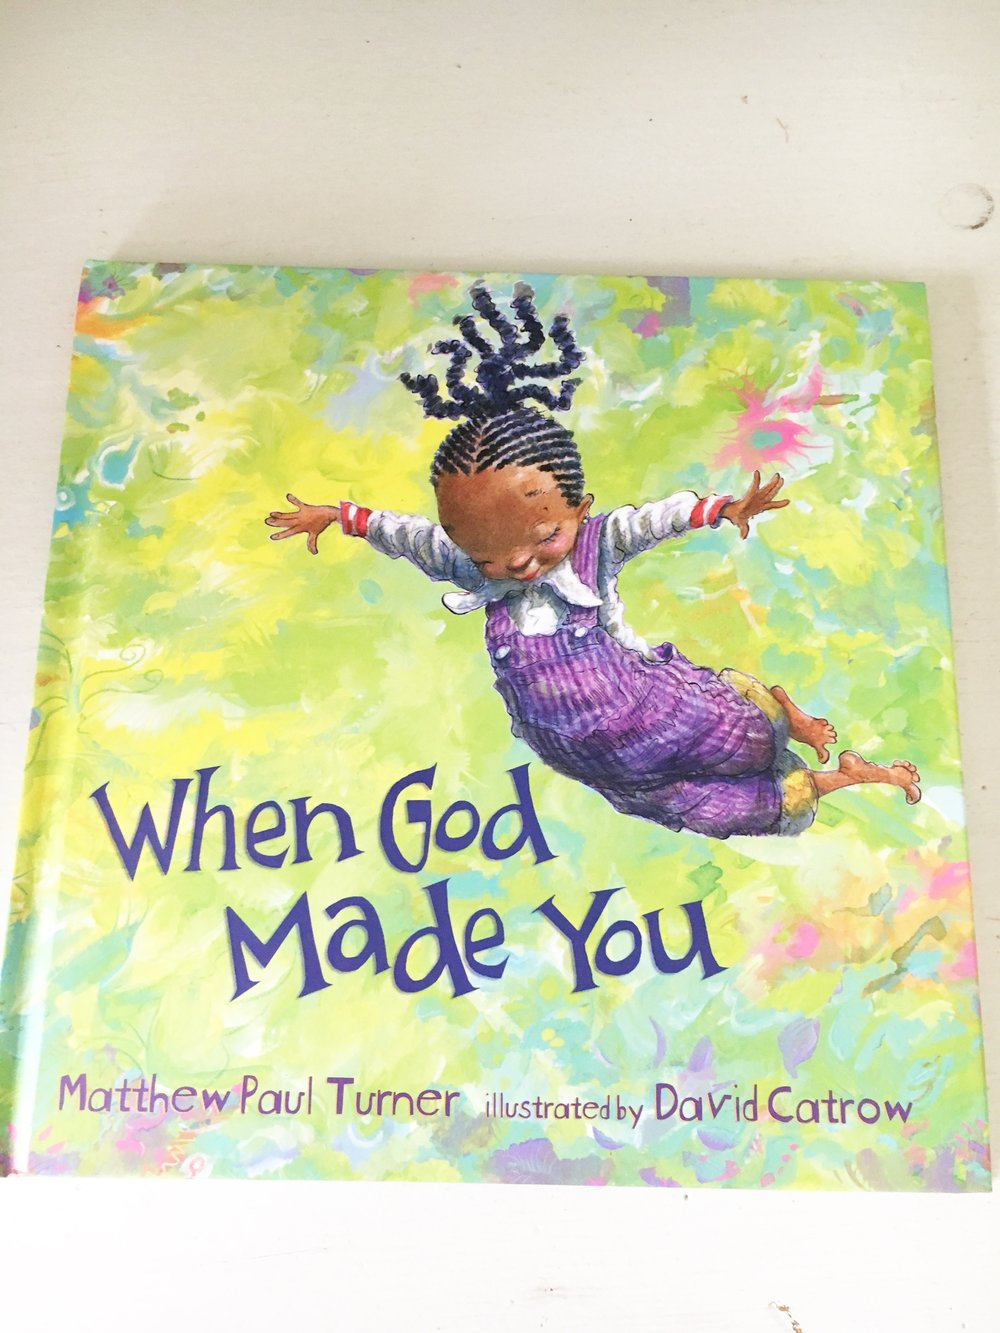 When God made you     YOU, you… God thinks about you.   God was thinking of you long before your debut.   From early on, children are looking to discover their place in the world and longing to understand how their personalities, traits, and talents fit in. The assurance that they are deeply loved and a unique creation in our big universe is certain to help them spread their wings and fly.